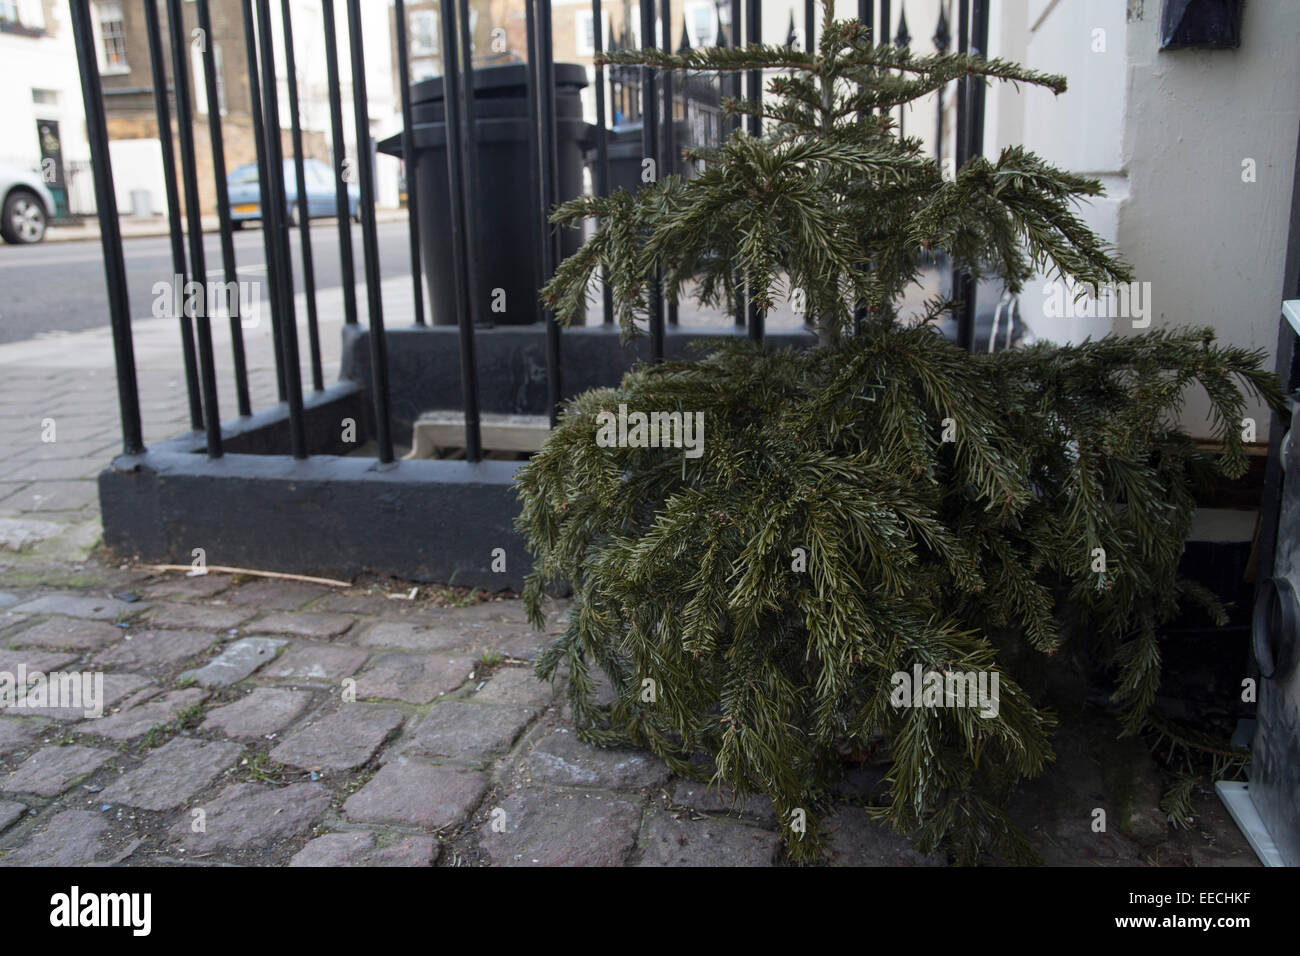 Christmas tree left out for the bin men in January. Unwanted rubbish. January blues. Xmas is over. Waste - Stock Image